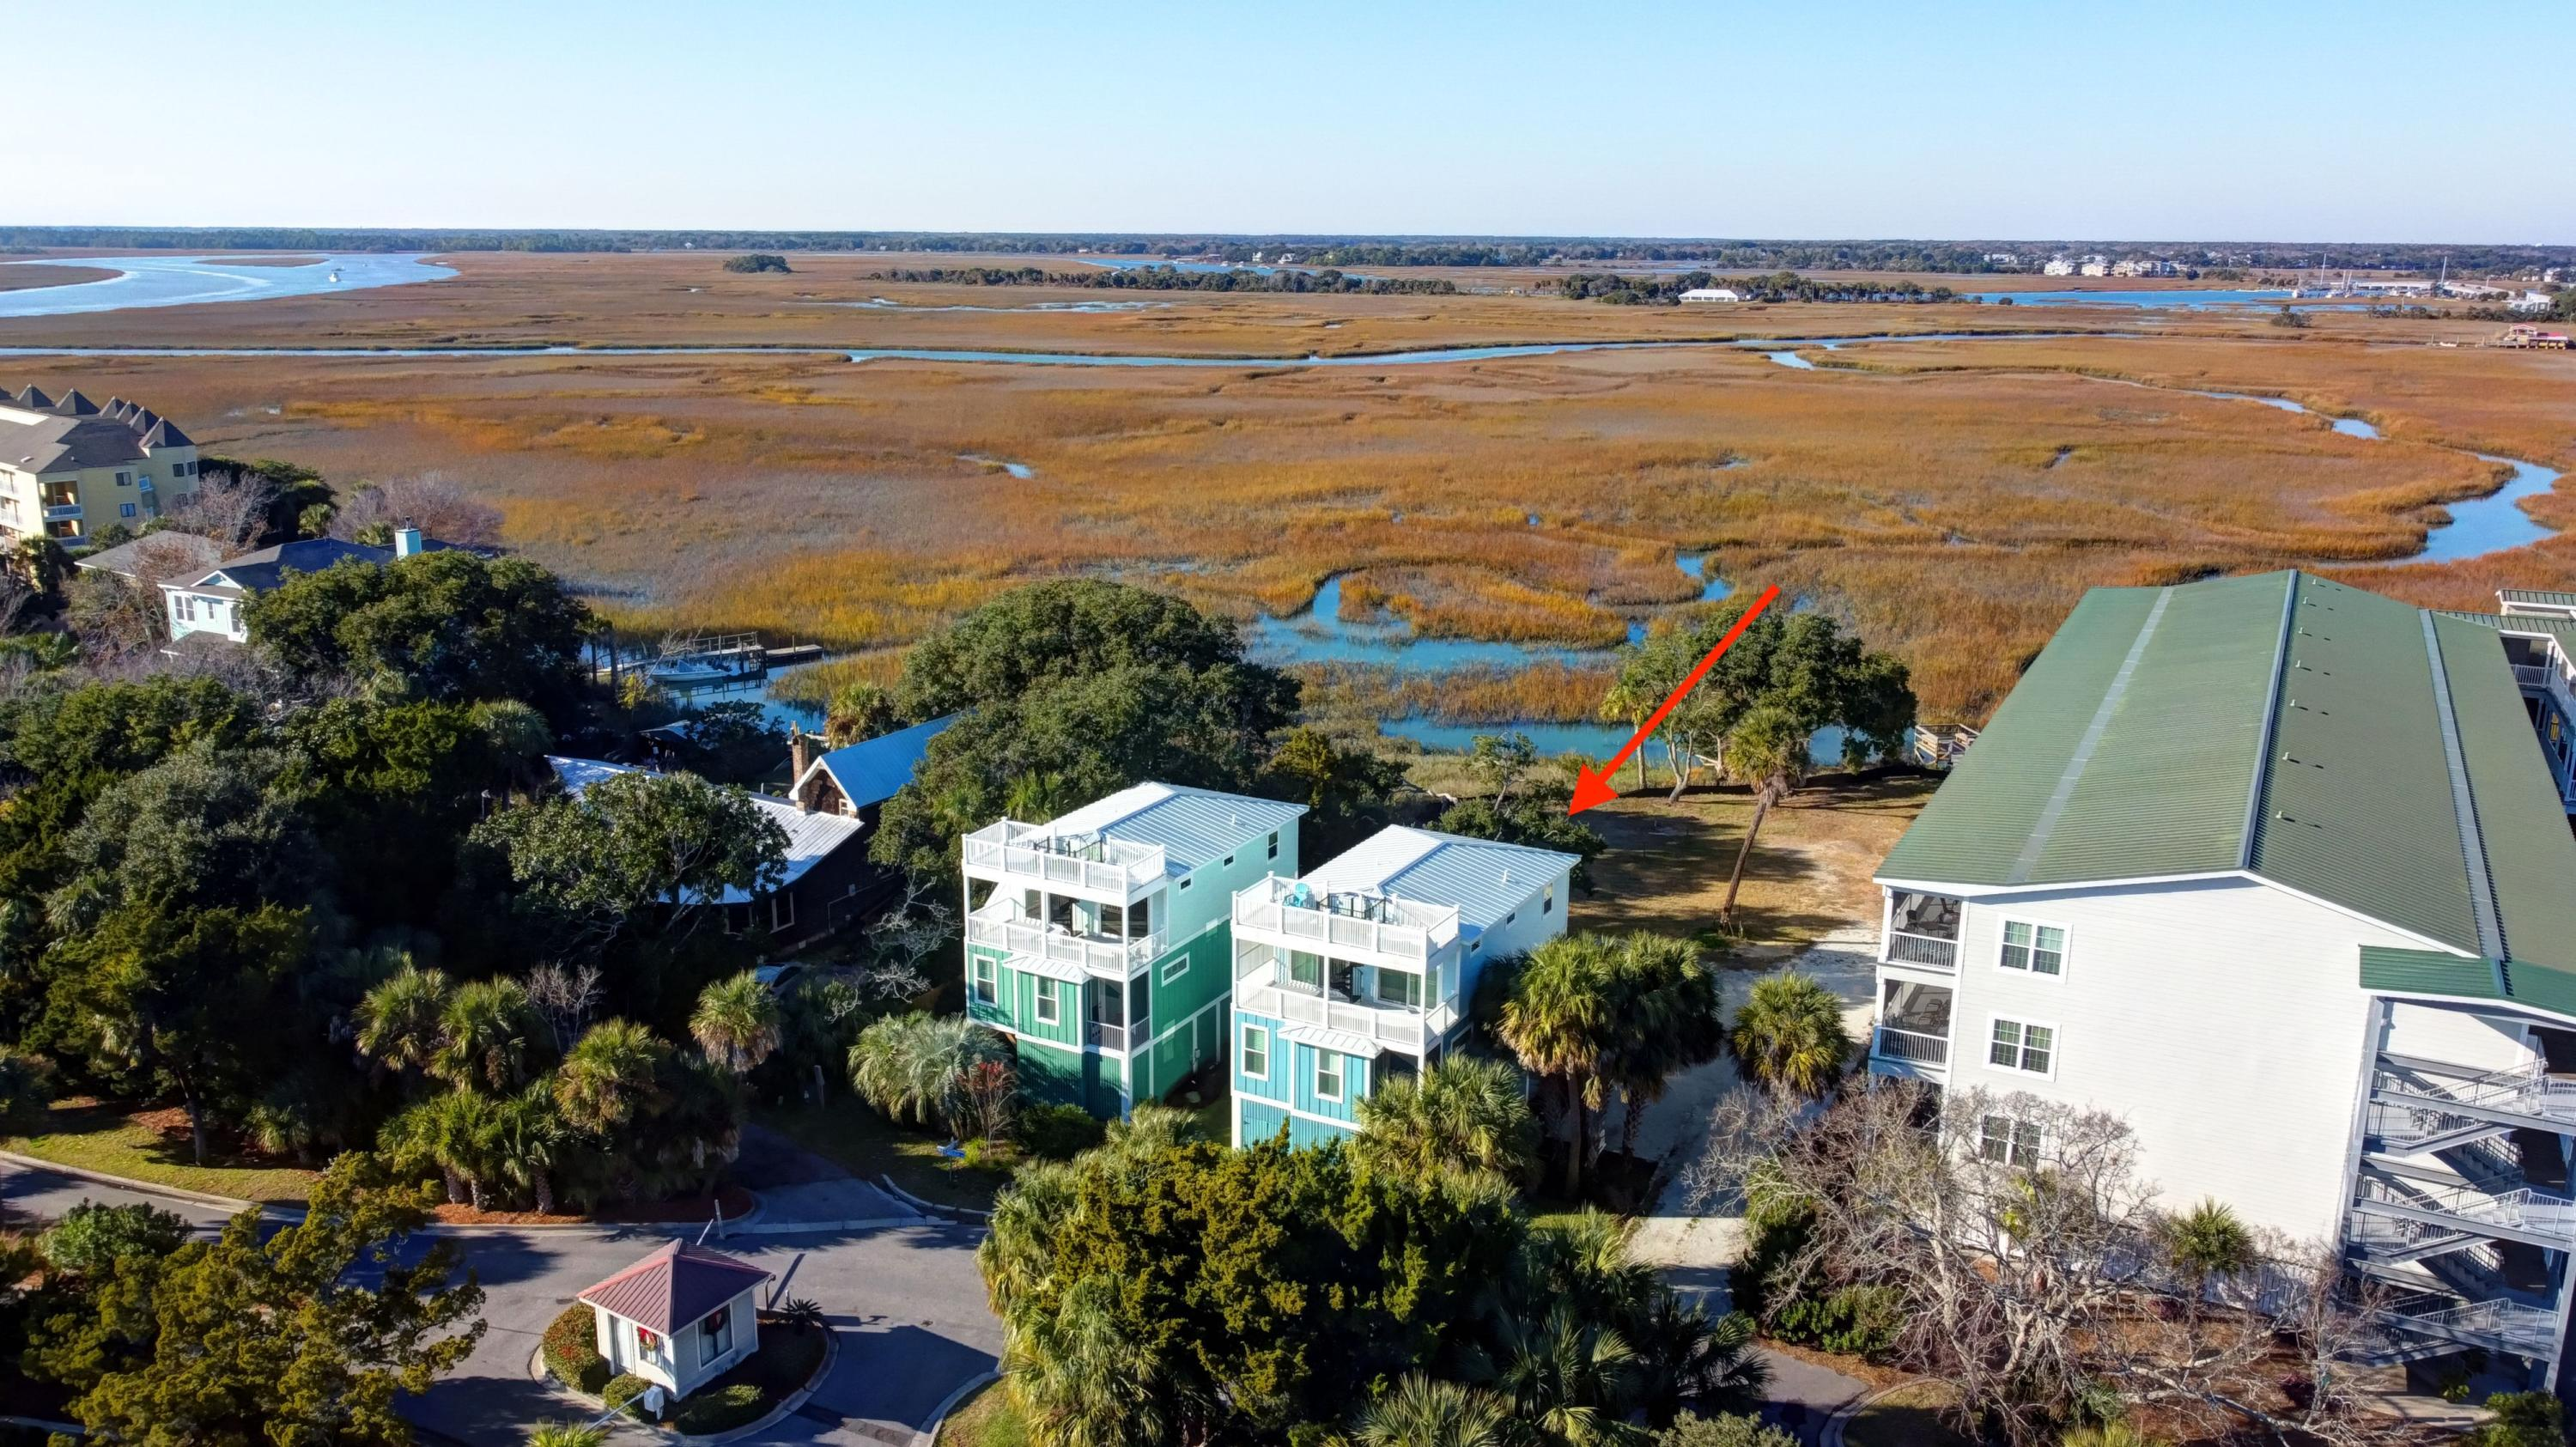 Mariners Cay Homes For Sale - 1002 Mariners Cay, Folly Beach, SC - 25